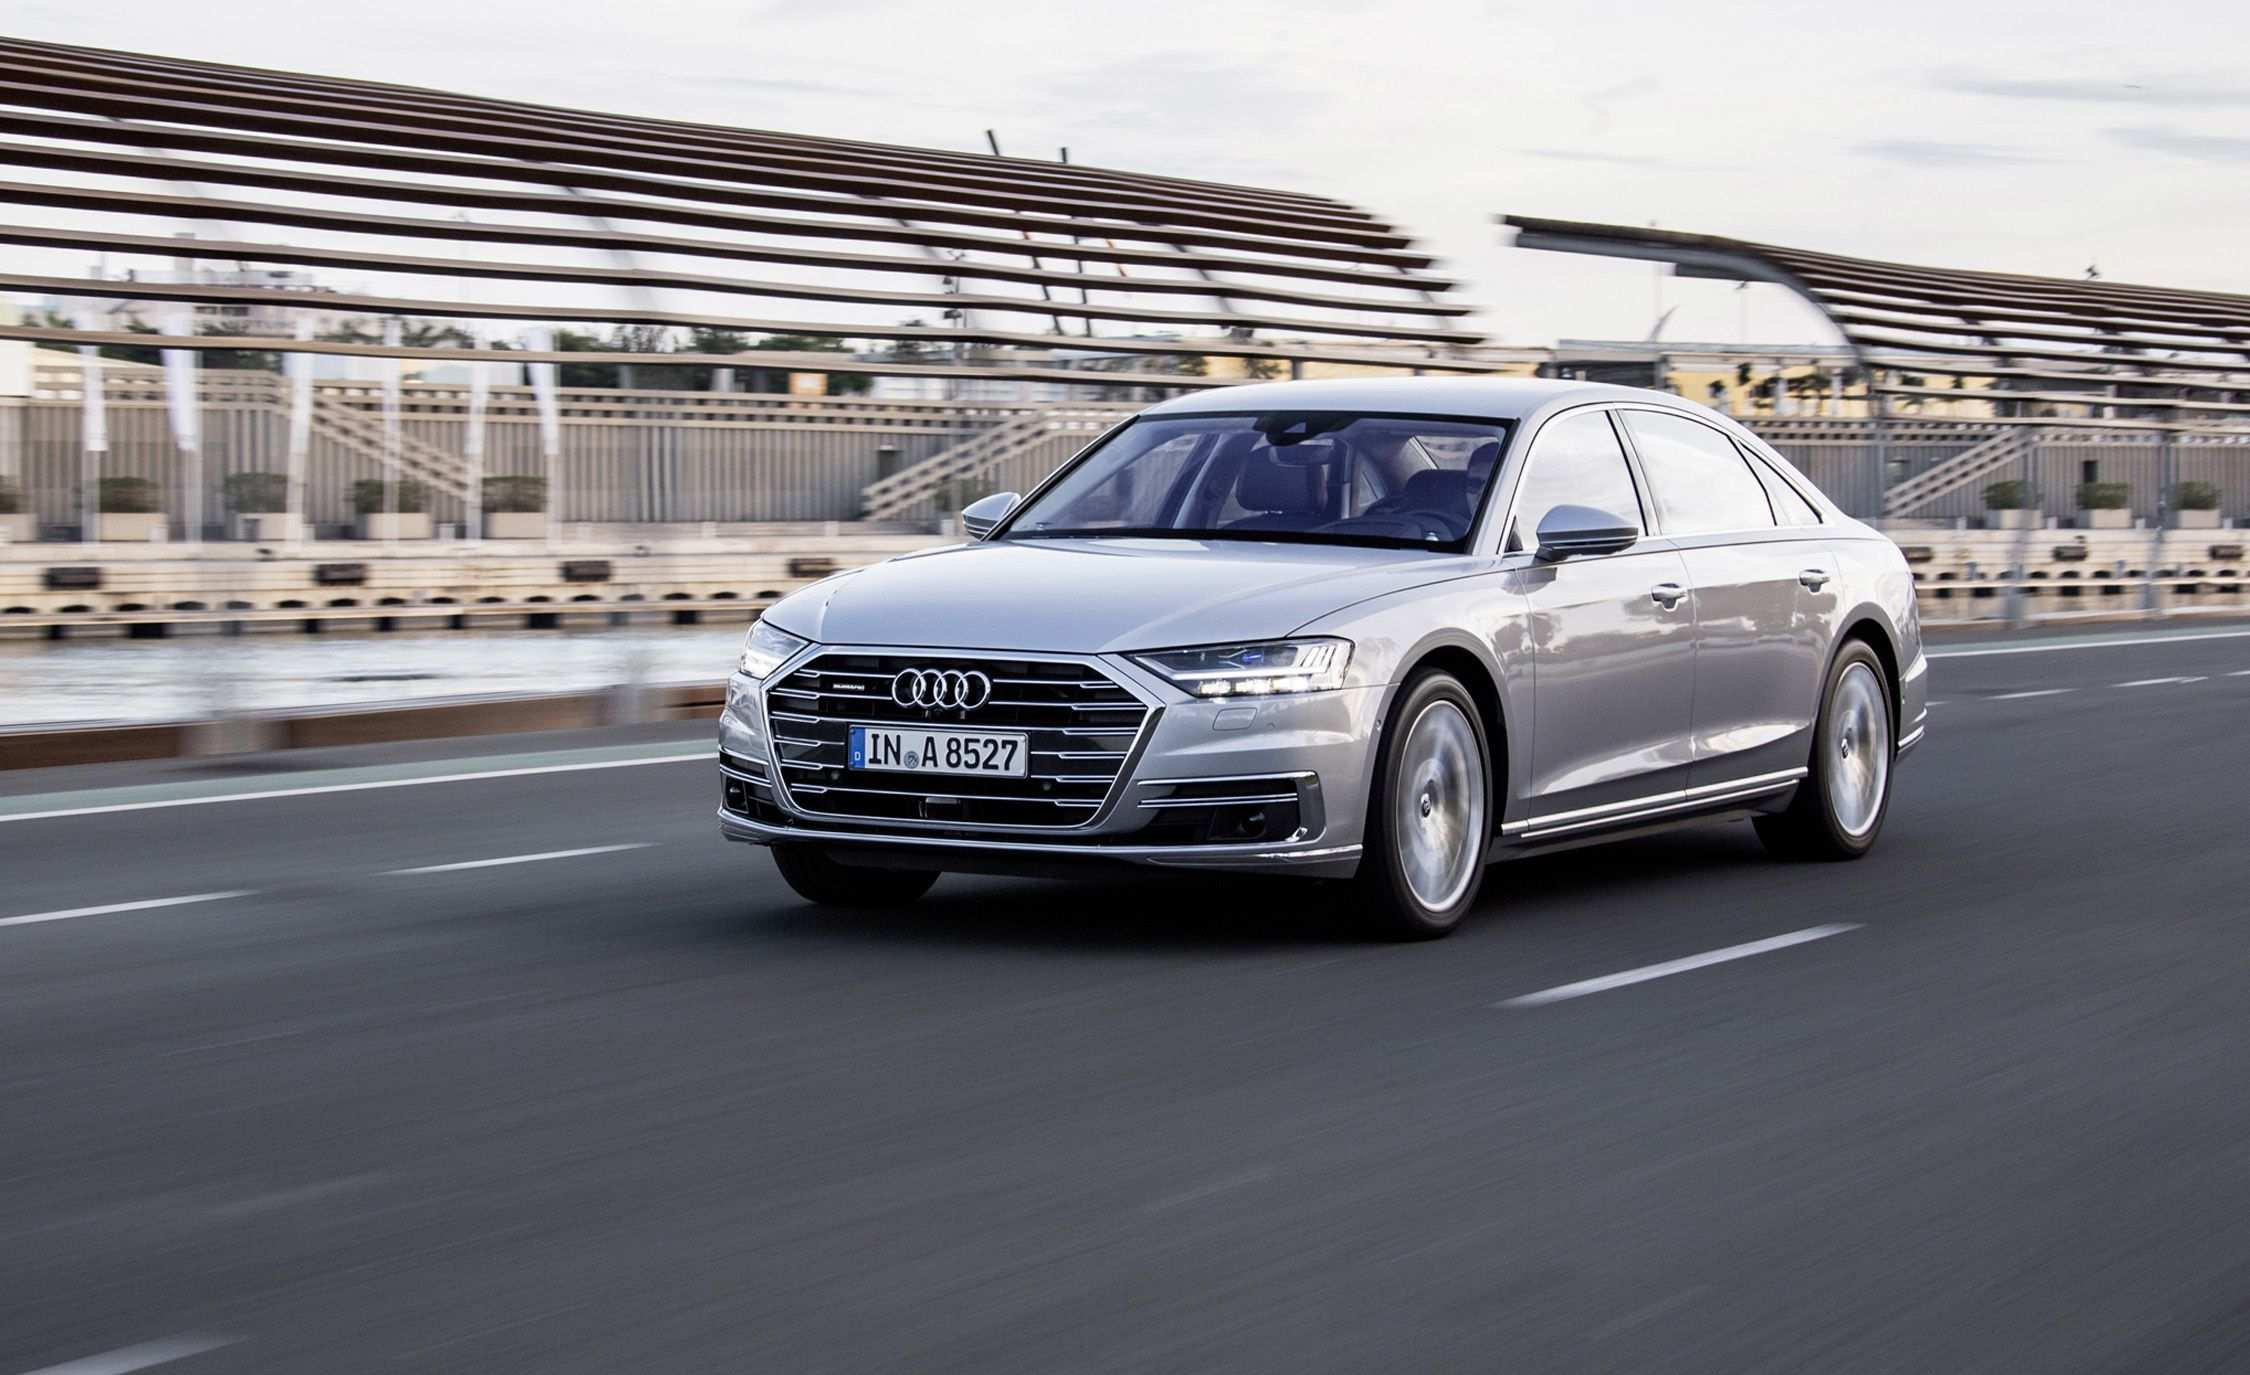 52 Great 2019 Audi A8 Debut Redesign for 2019 Audi A8 Debut